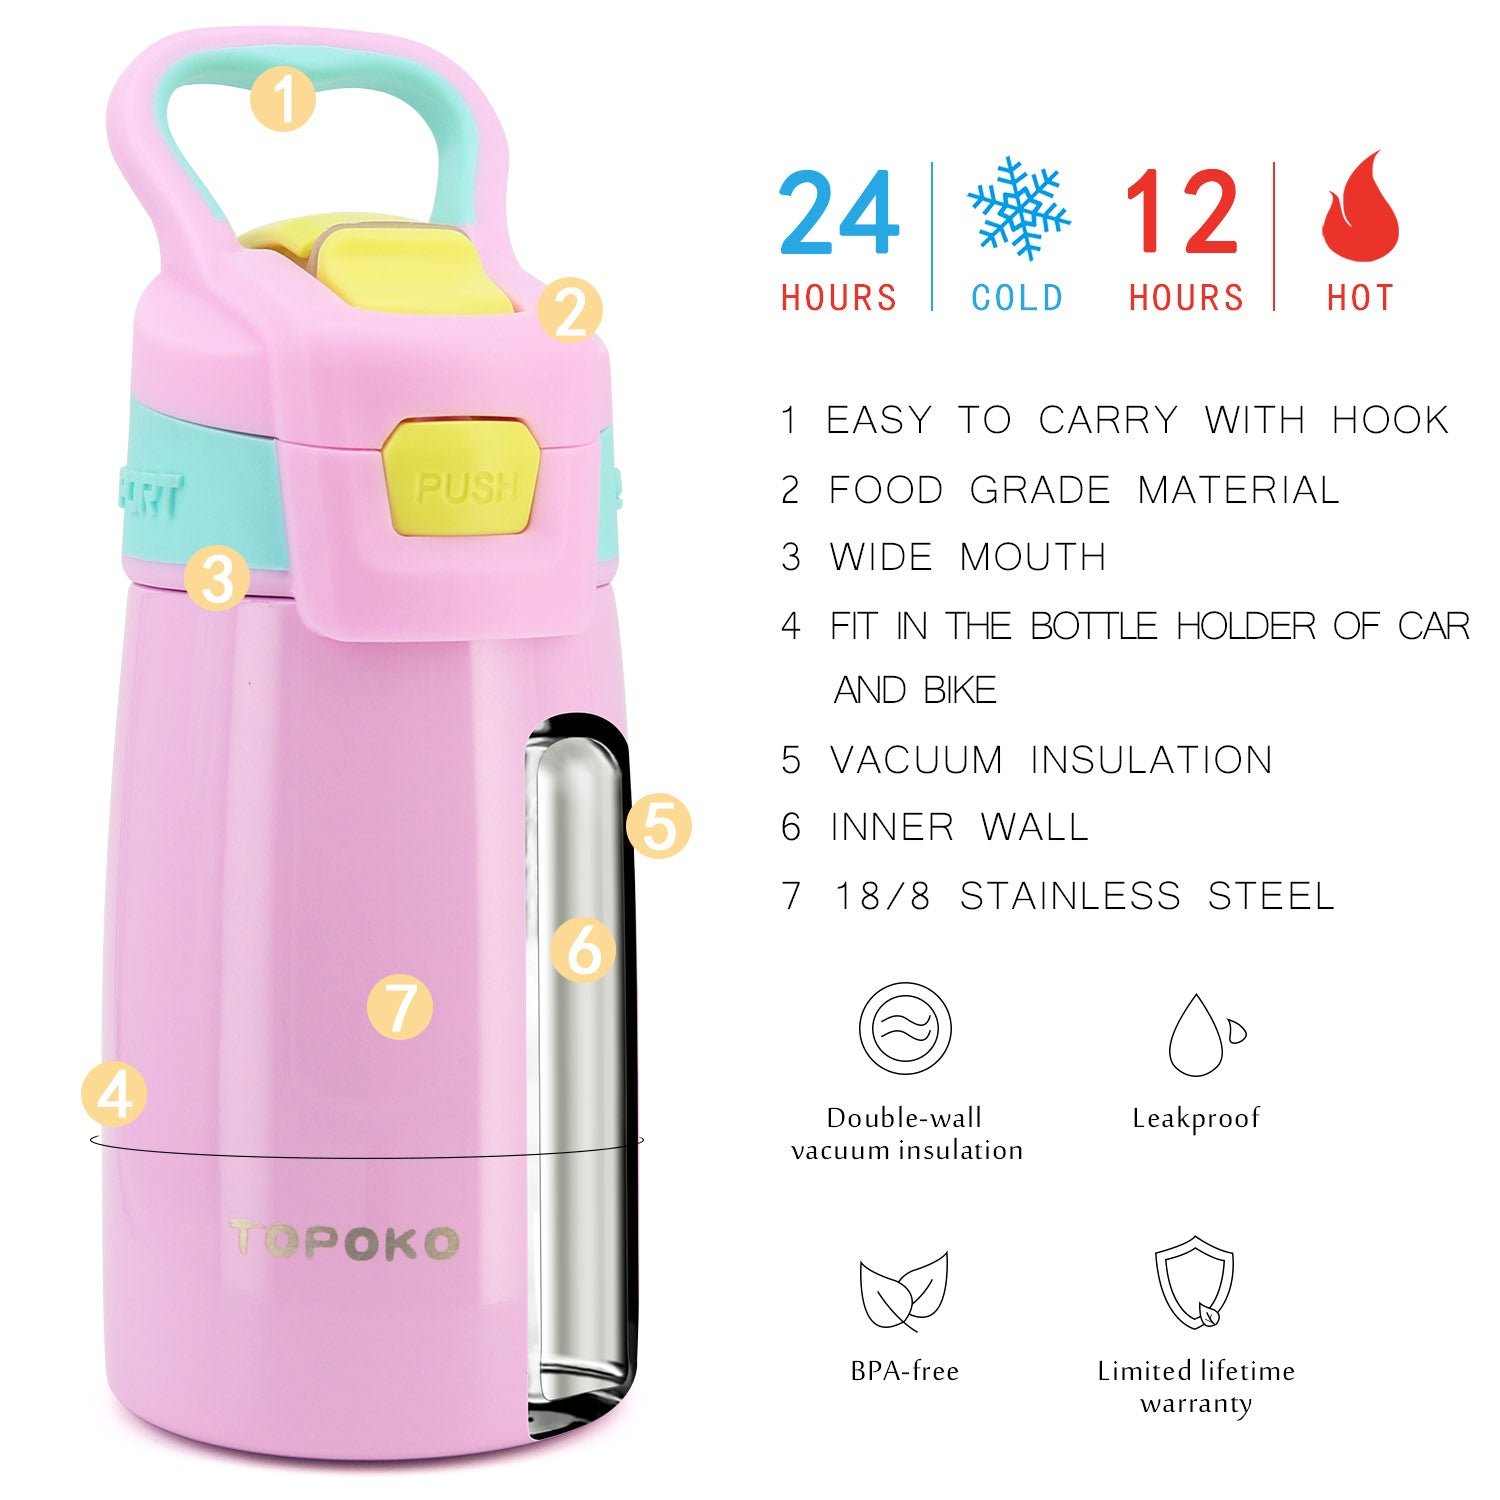 TOPOKO Kid's Auto Flip Stainless Steel Double Wall Water Bottle, Vacuum Insulated, Sweat Proof, Leak Proof, Wide Mouth, with Carrying Handle-12 OZ